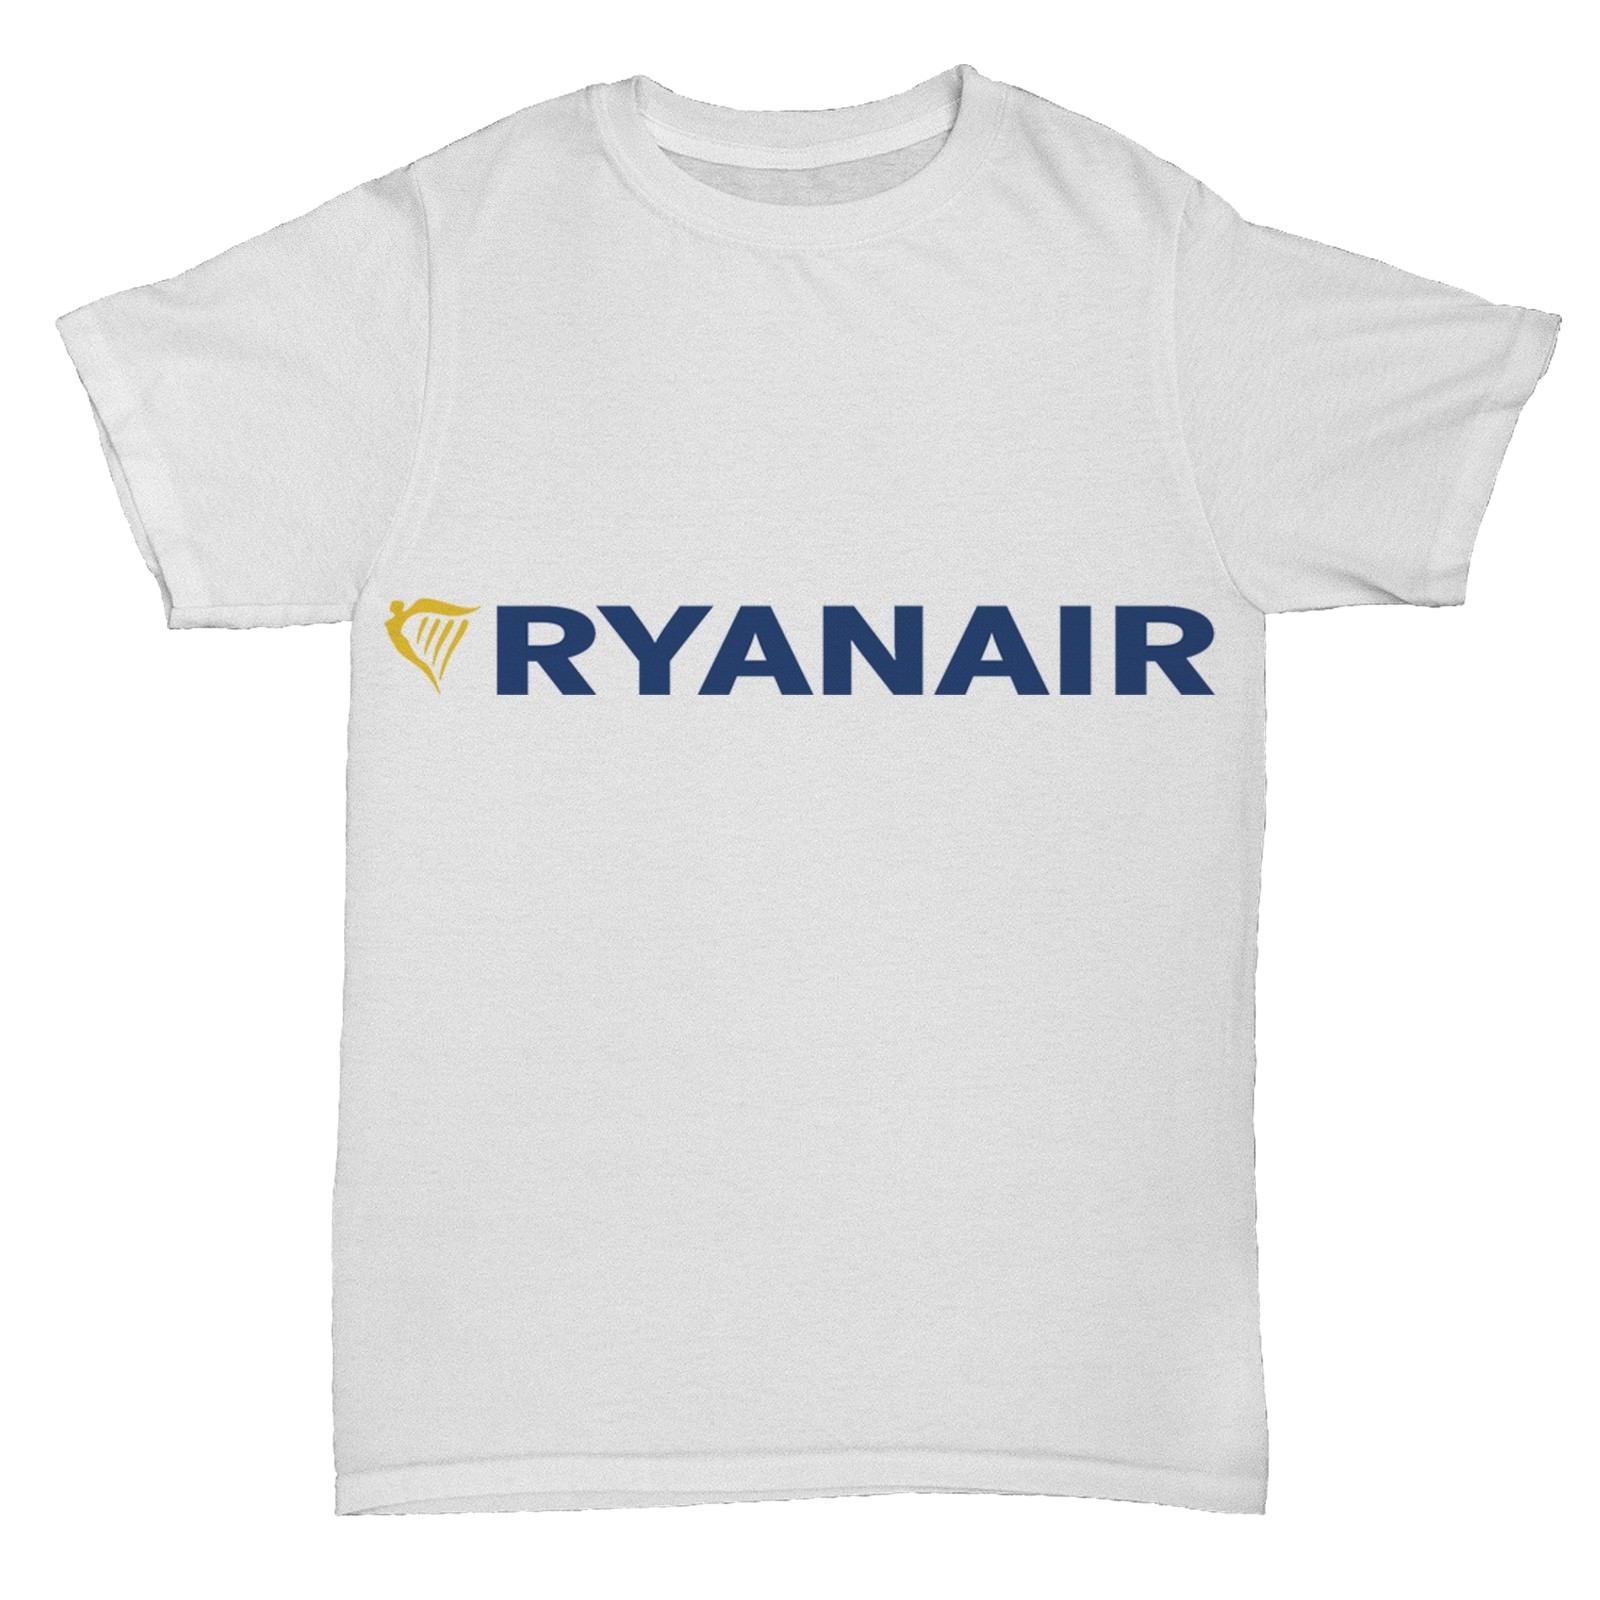 RYANAIR AIRWAYS BA AIRLINES RETRO AEROPLANE BOAC PAN AM T SHIRT Men Summer T-Shirt Summer 2018 100% Cotton Anime